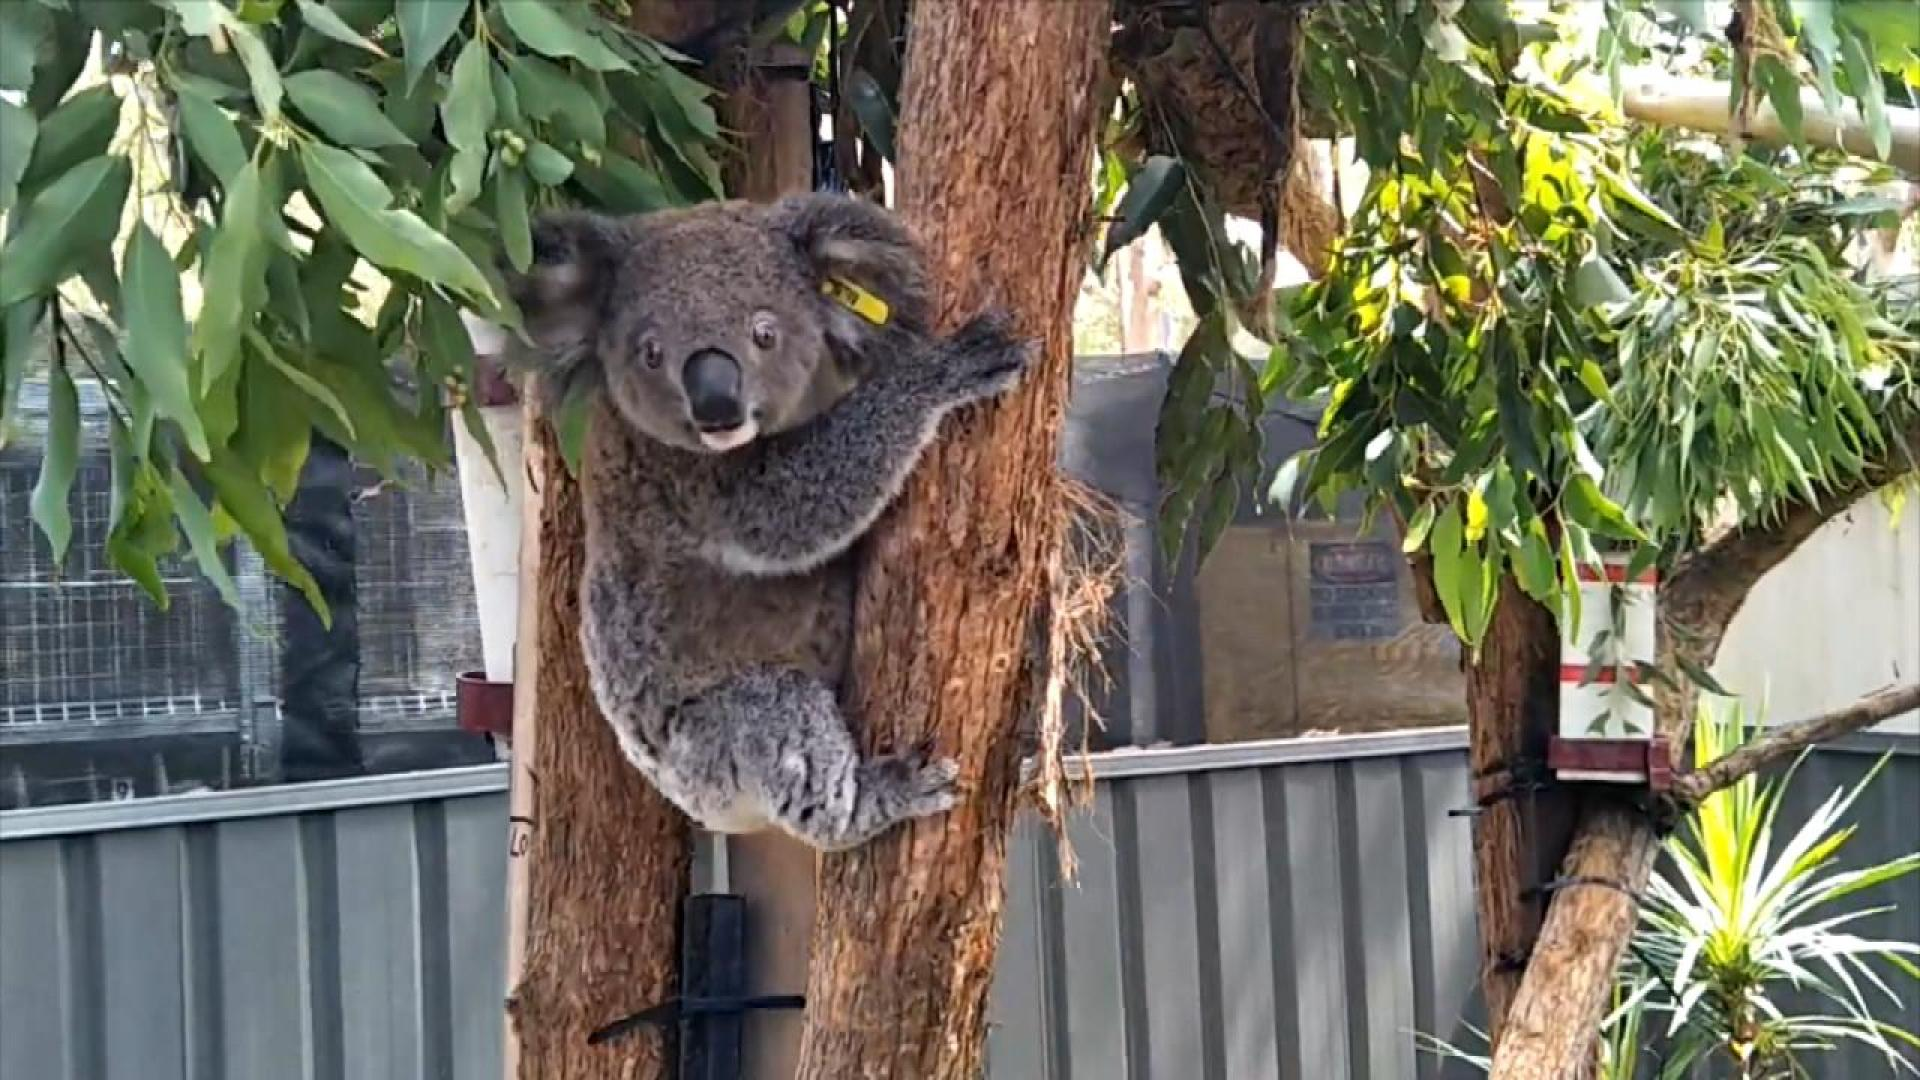 Meet The Koalas Kangaroos And Other Animals Who Need Help In Australia S Wildfires Inside Edition